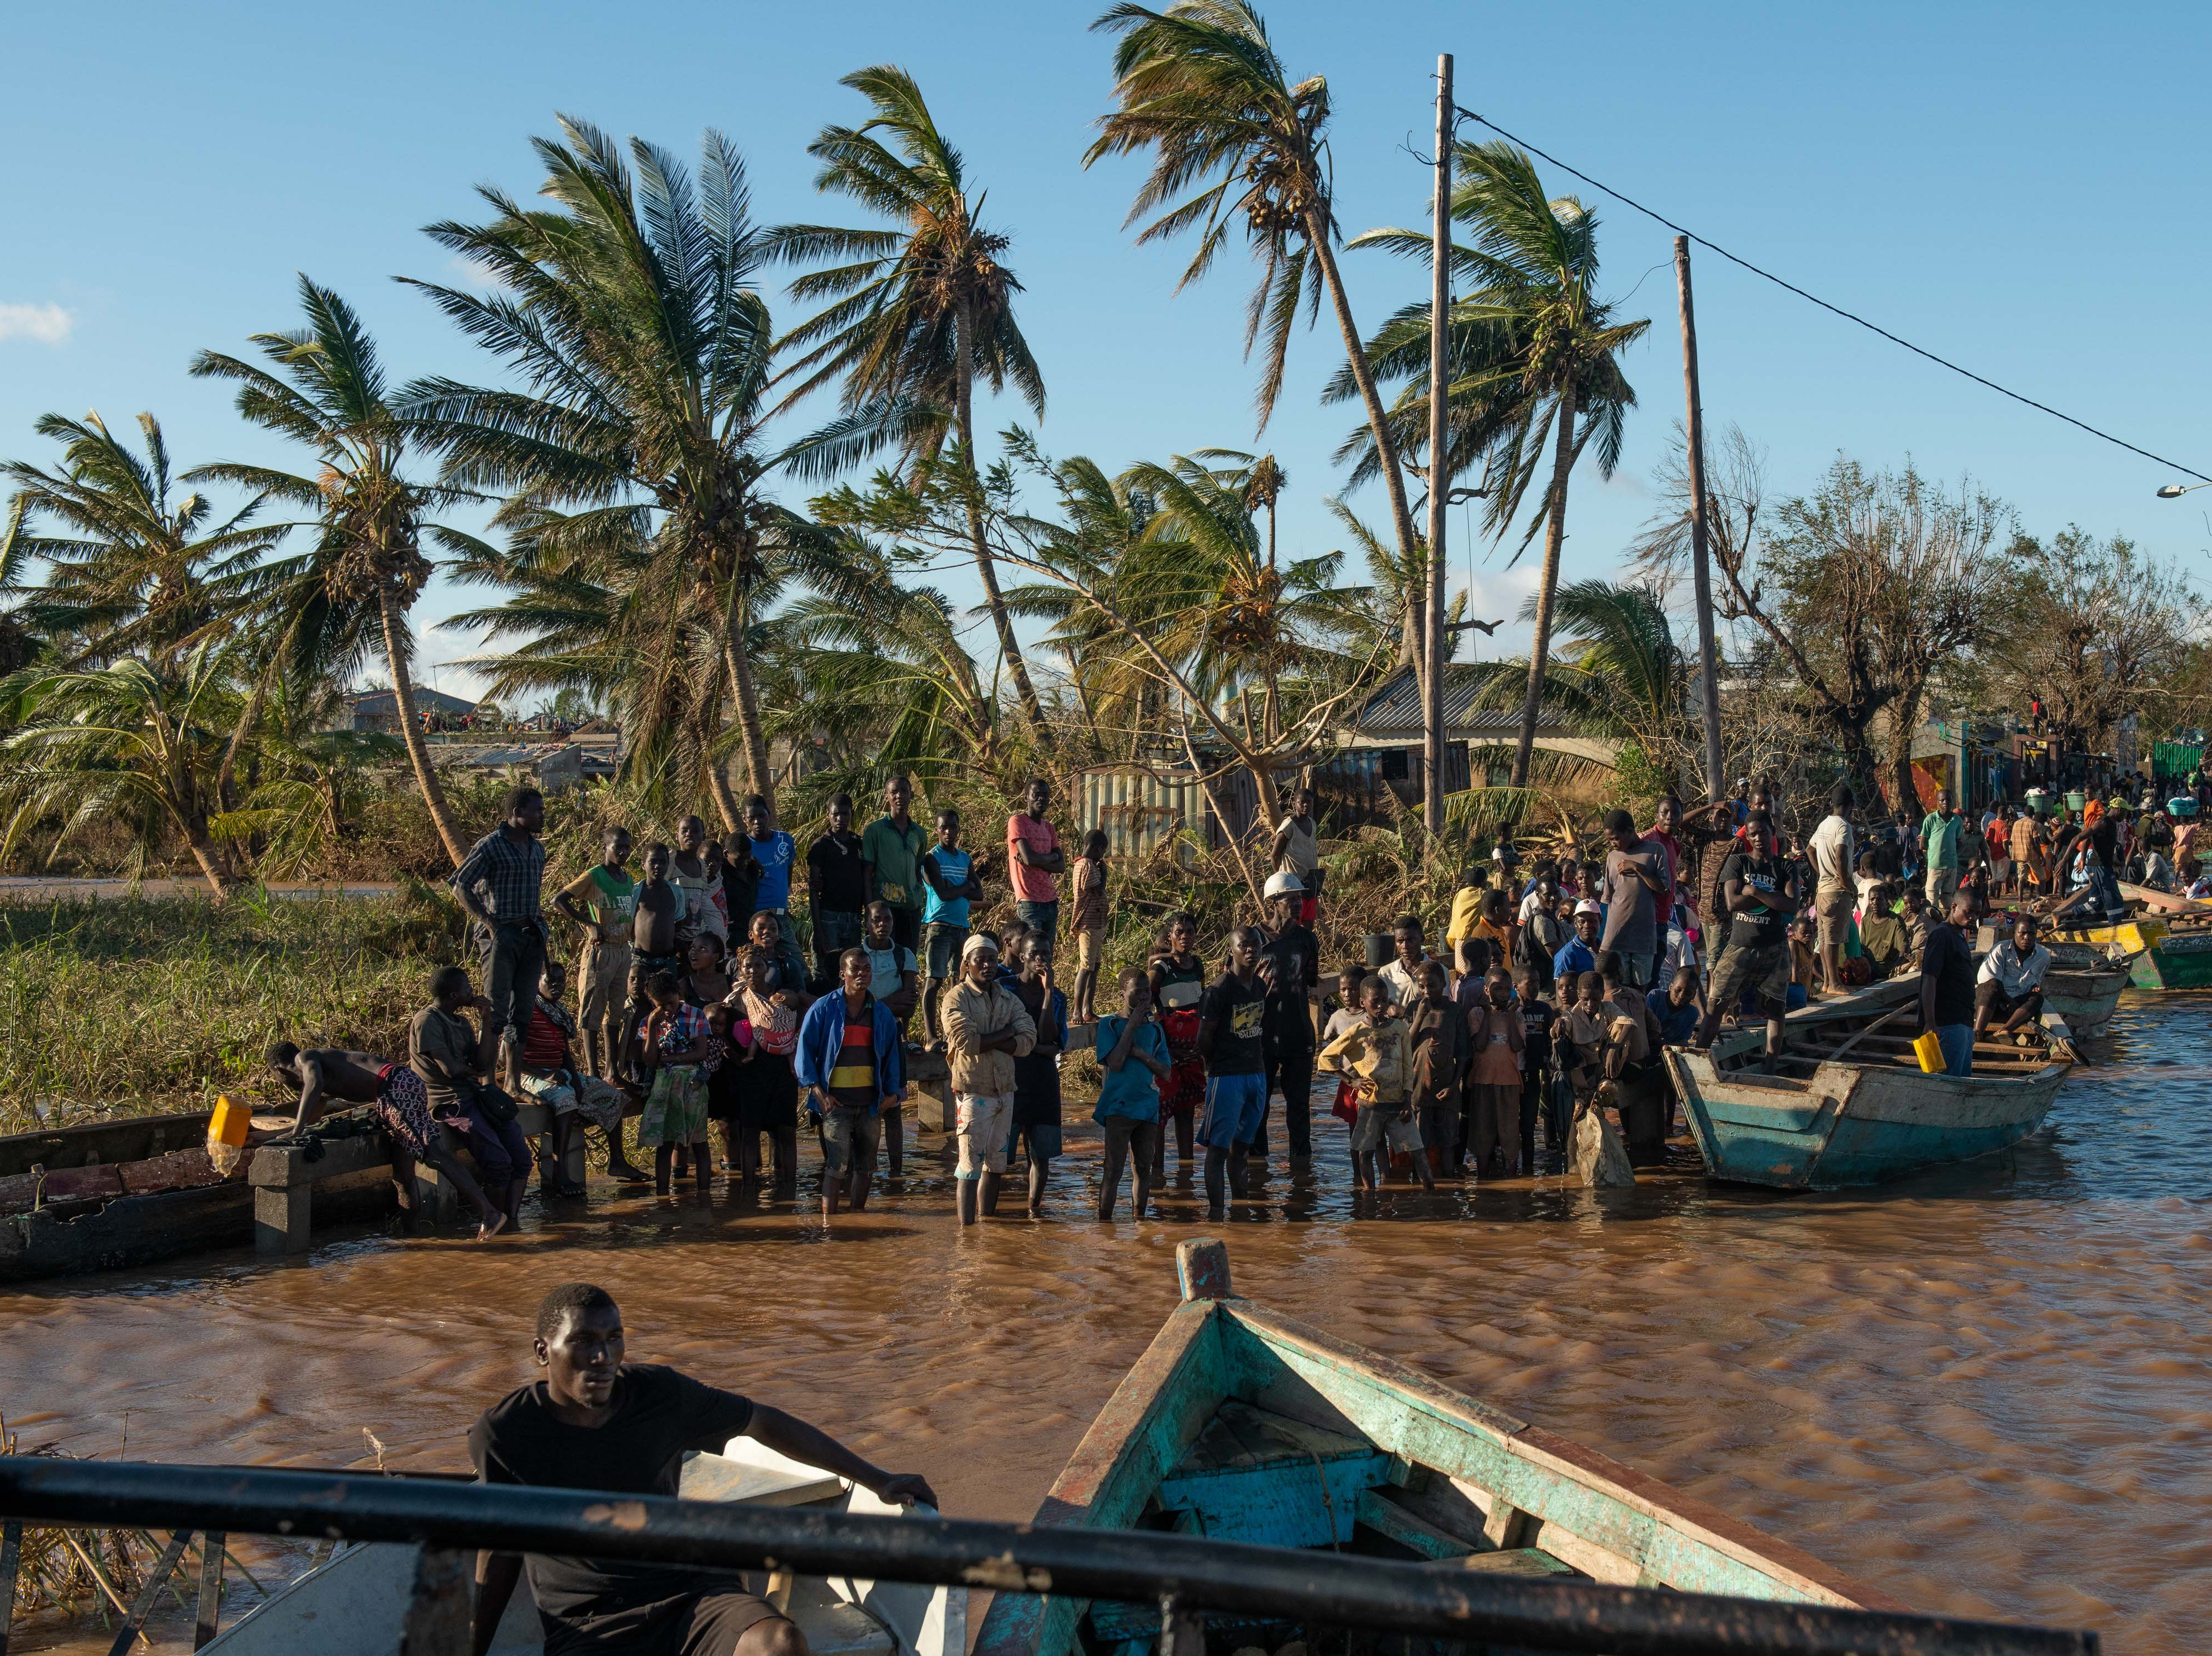 People stranded by Cyclone Idai wait for rescue by the Indian Navy on March 22, 2019 in Buzi, Mozambique. Thousands of people are still stranded after after the storm hit the country last week.